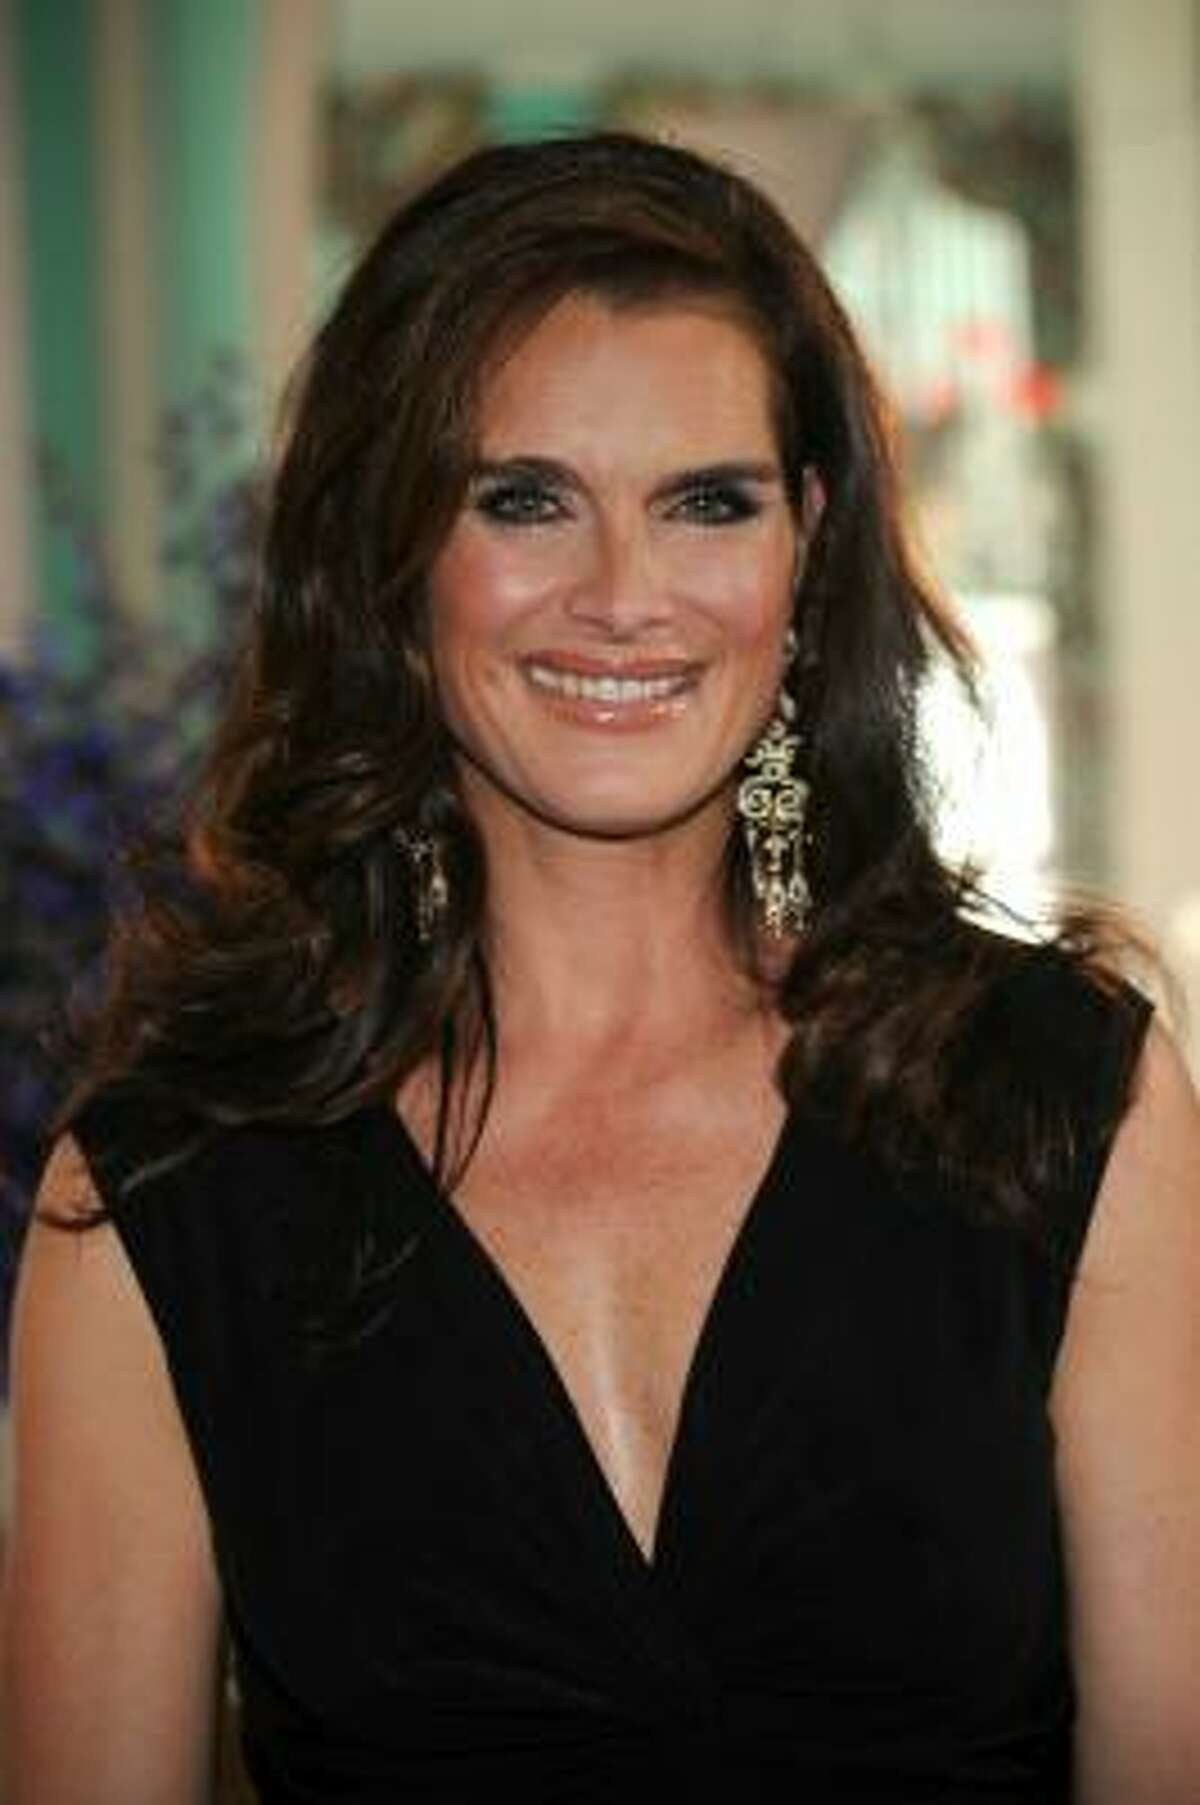 Brooke Shields Shields has become the face of postpartum depression, and her story has made many American women more aware of the condition.